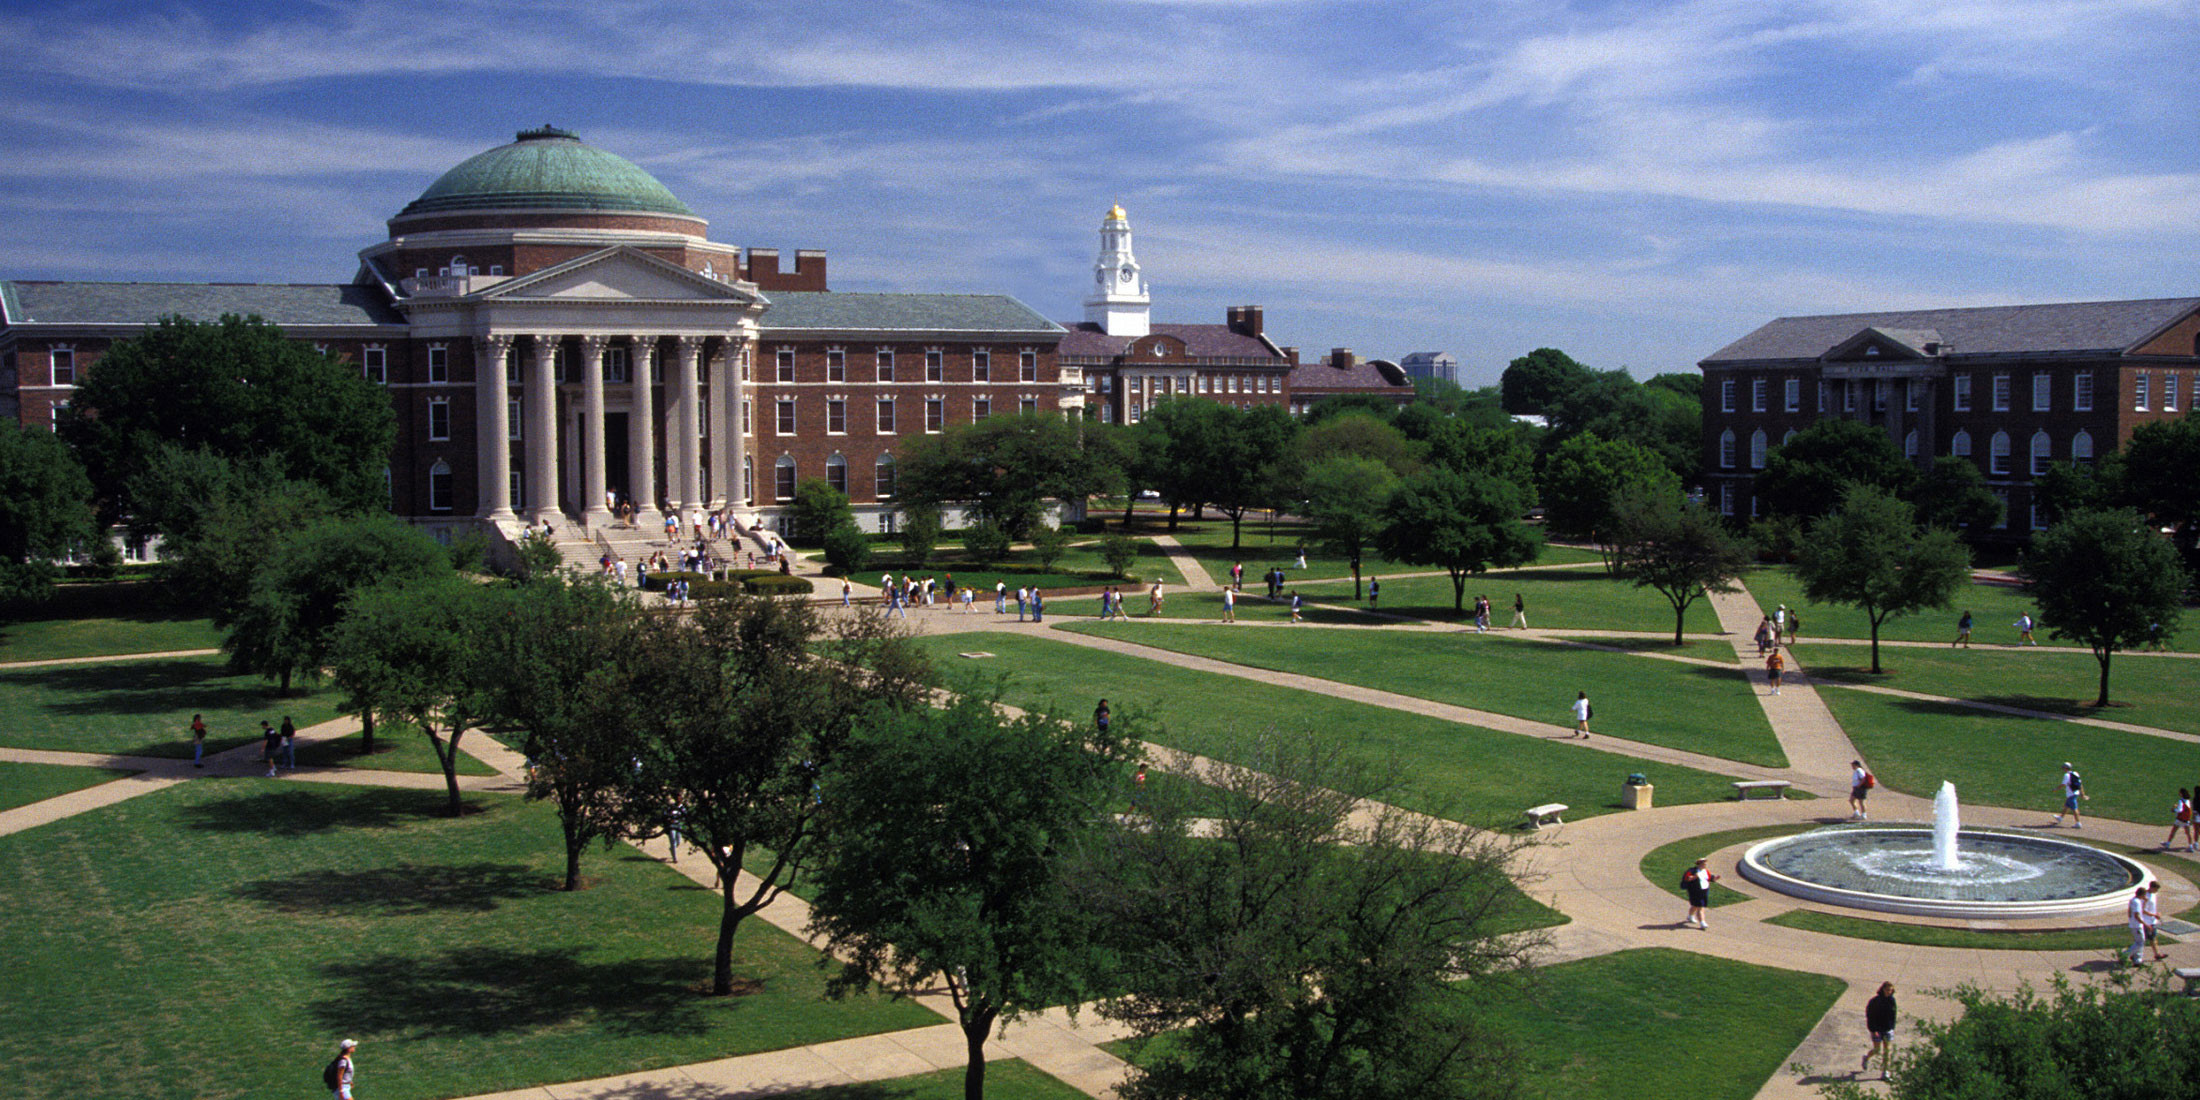 university of virginia admissions essay Articles & blogs browse all articles expert blogs admit this expert opinions on the college admissions process ask the dean read answers to questions about the college admissions process, financial aid, and college search by college confidential.